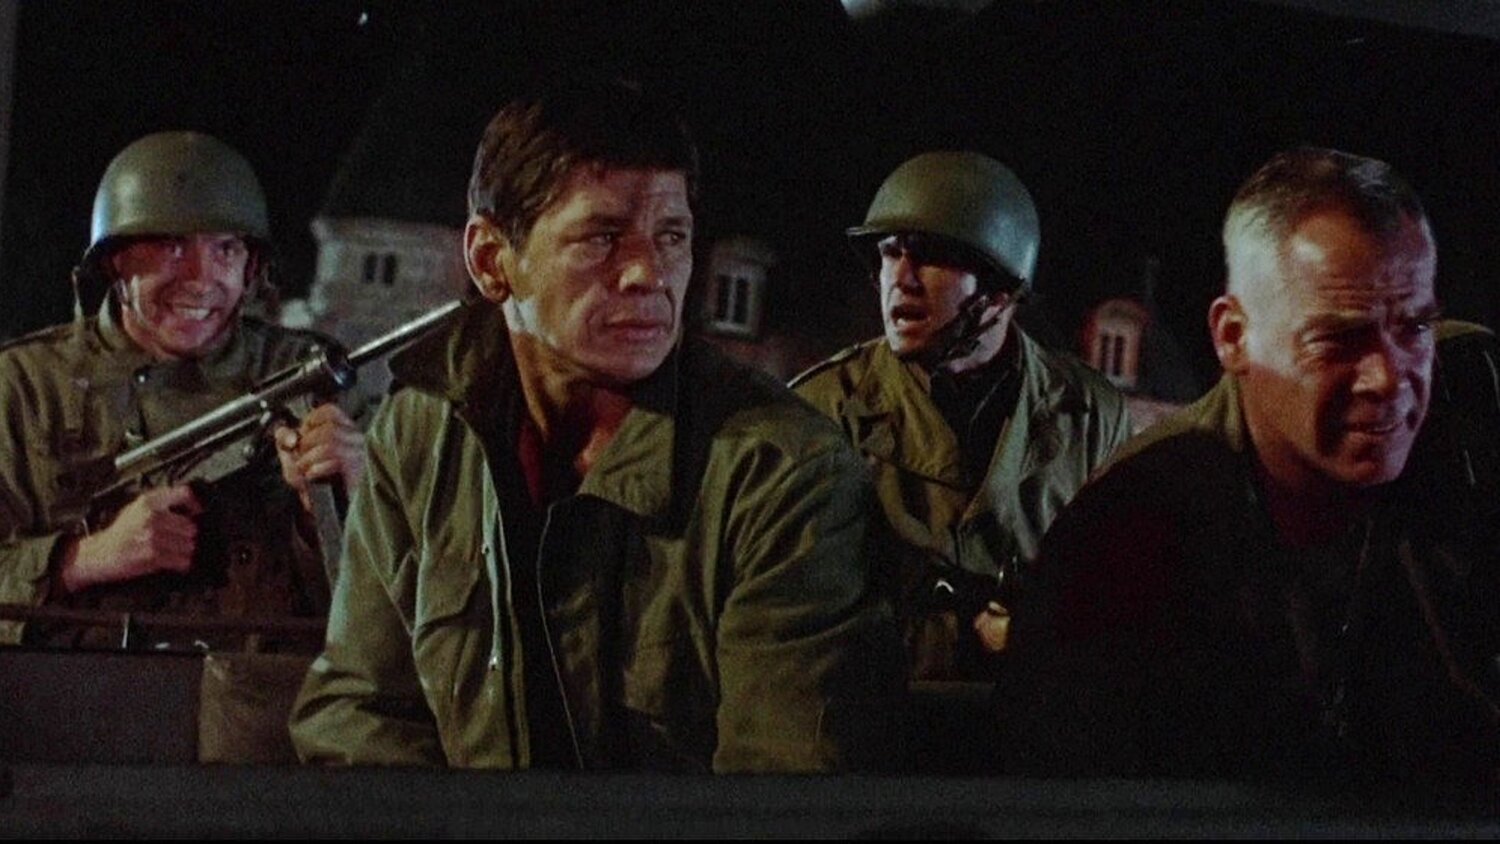 David Ayer Wants His Remake of THE DIRTY DOZEN To Launch a New